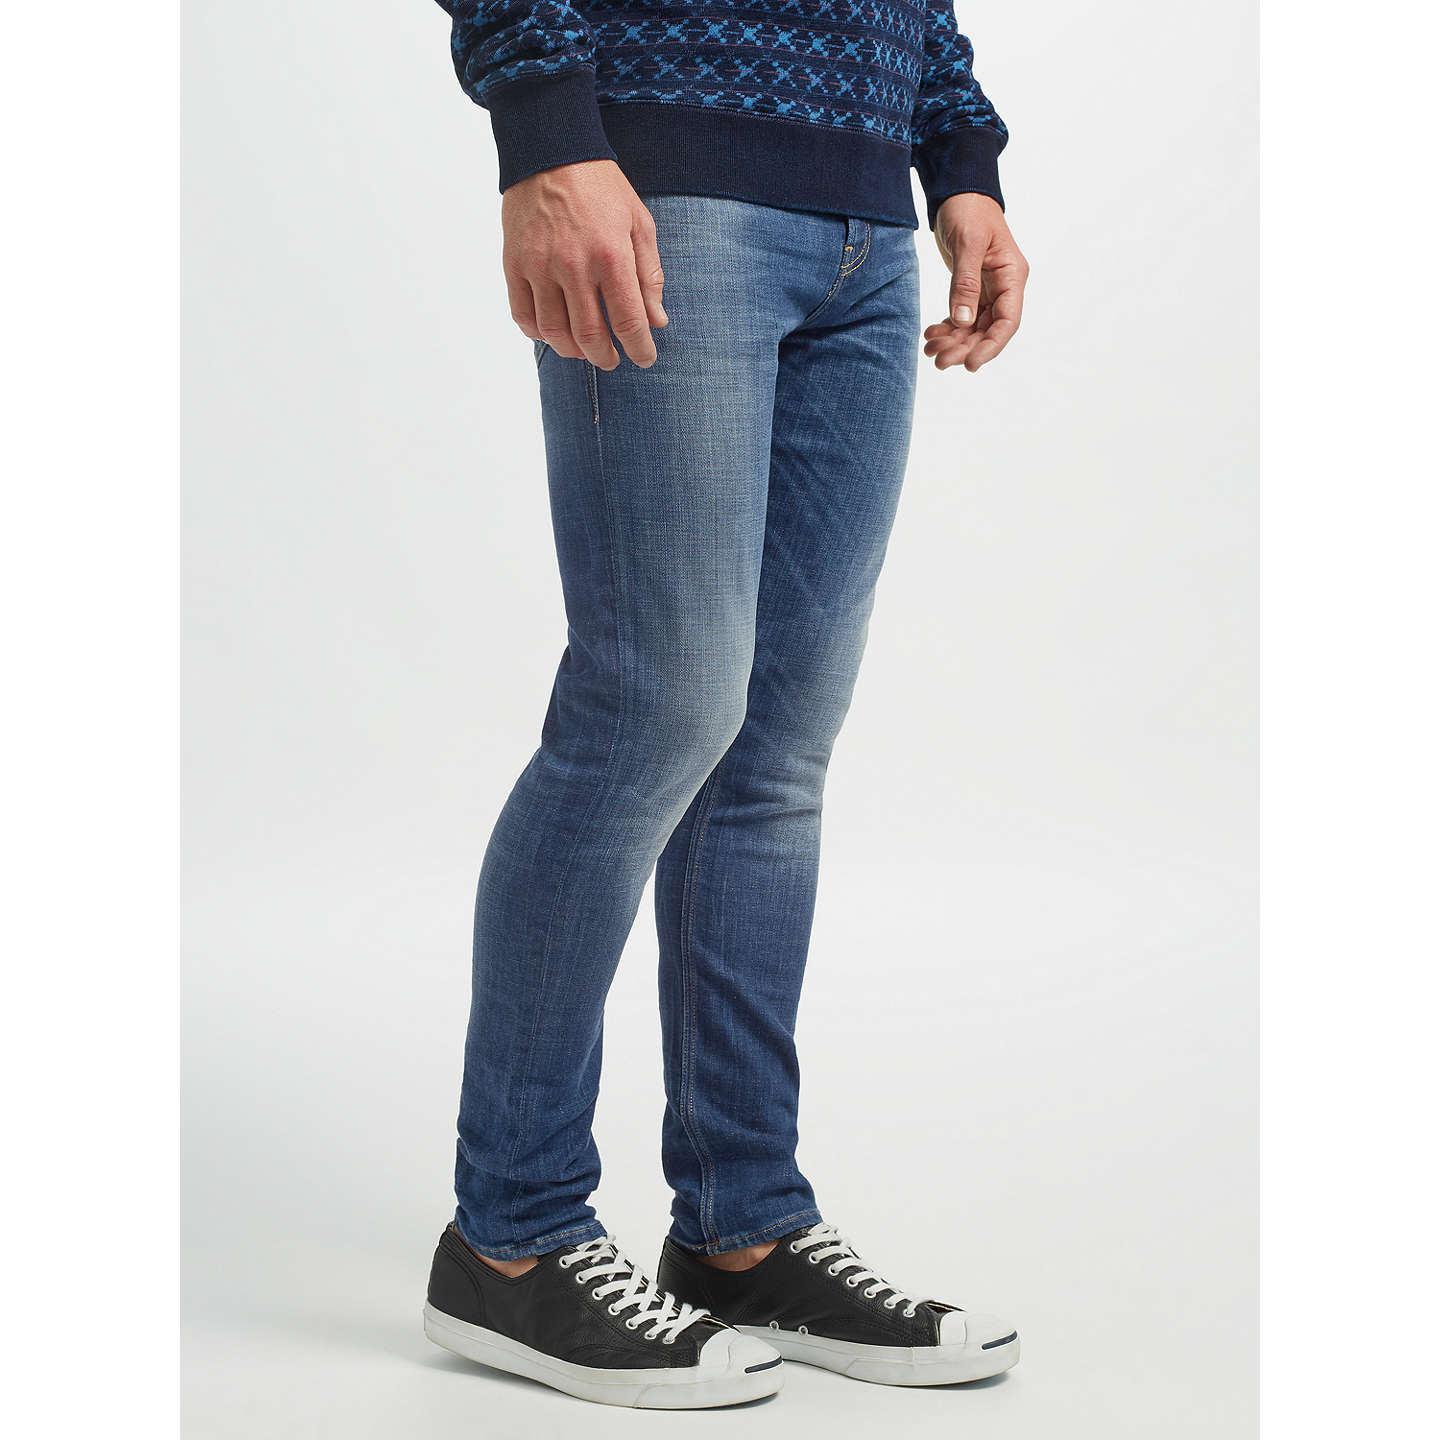 BuyScotch & Soda Stretch Skinny Jeans, Dutch Blauw, 32L Online at johnlewis.com